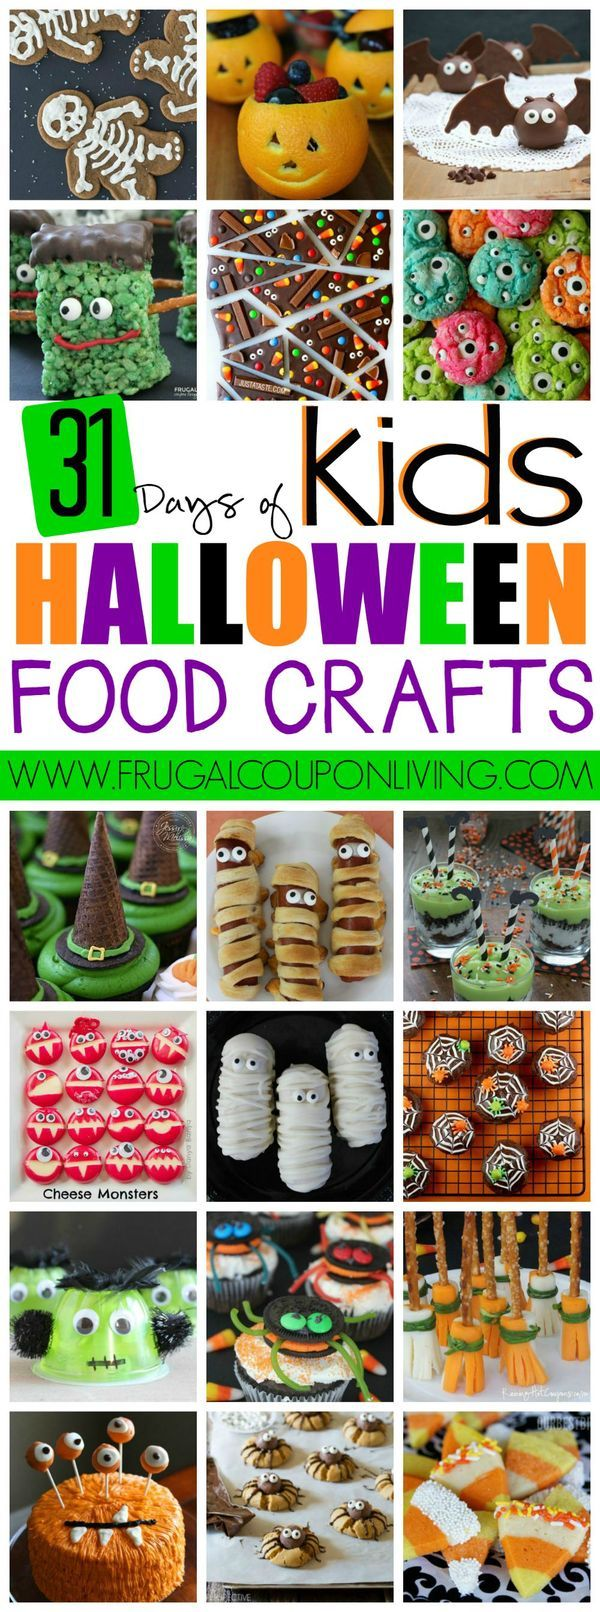 31 days of Halloween Food, Crafts, Activities for Kids on Frugal Coupon Living - Halloween Party Idea, Recipes for October Fall Parties and more!